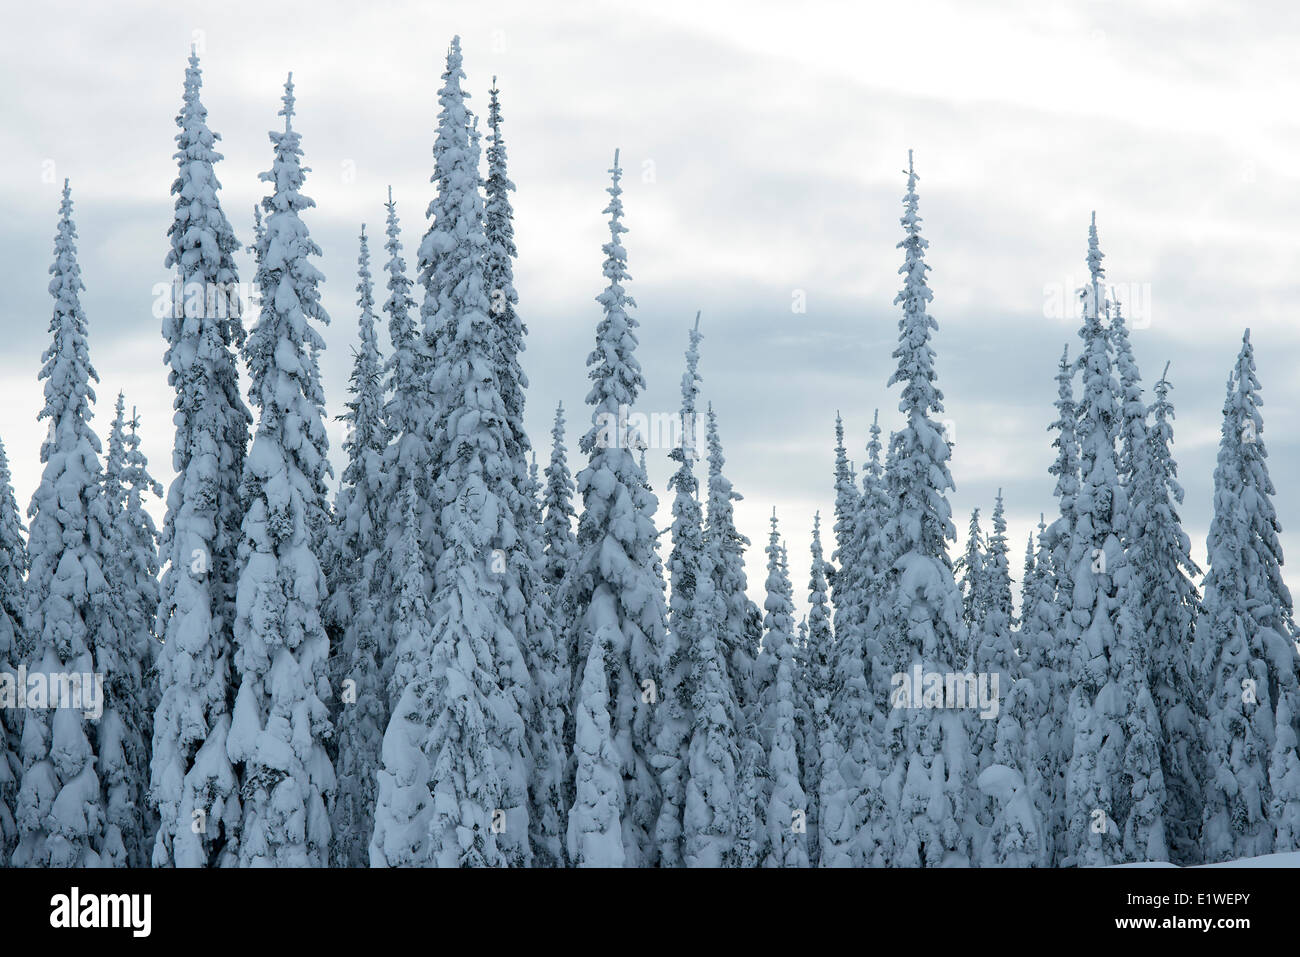 snow covered subalpine fir Abies lasiocarpa forest in twilight spindly crown shapes resistant to snow loads Silver Star Stock Photo